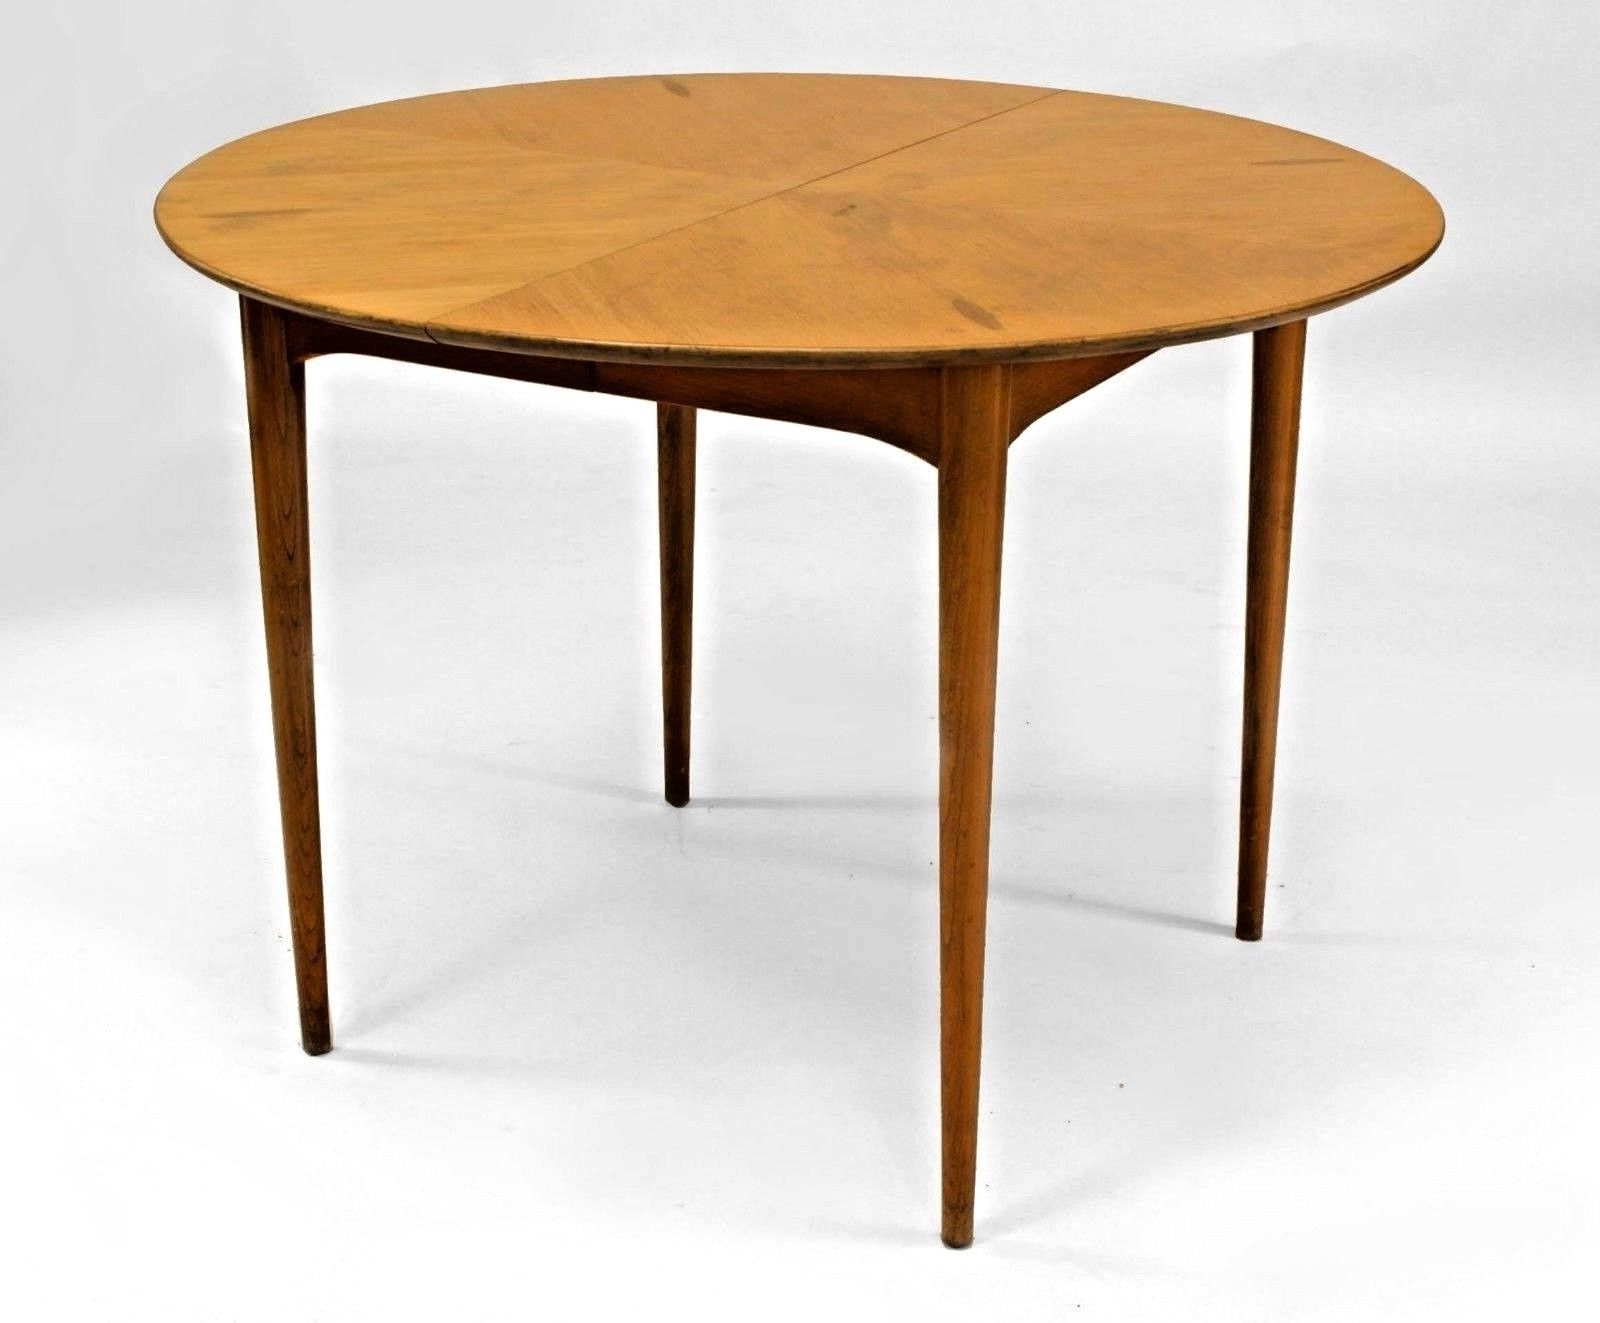 Well Liked Danish Style Dining Tables Within Post War Design (Danish Style)1950S Light Wood (Pecan) Round Dining (View 24 of 25)